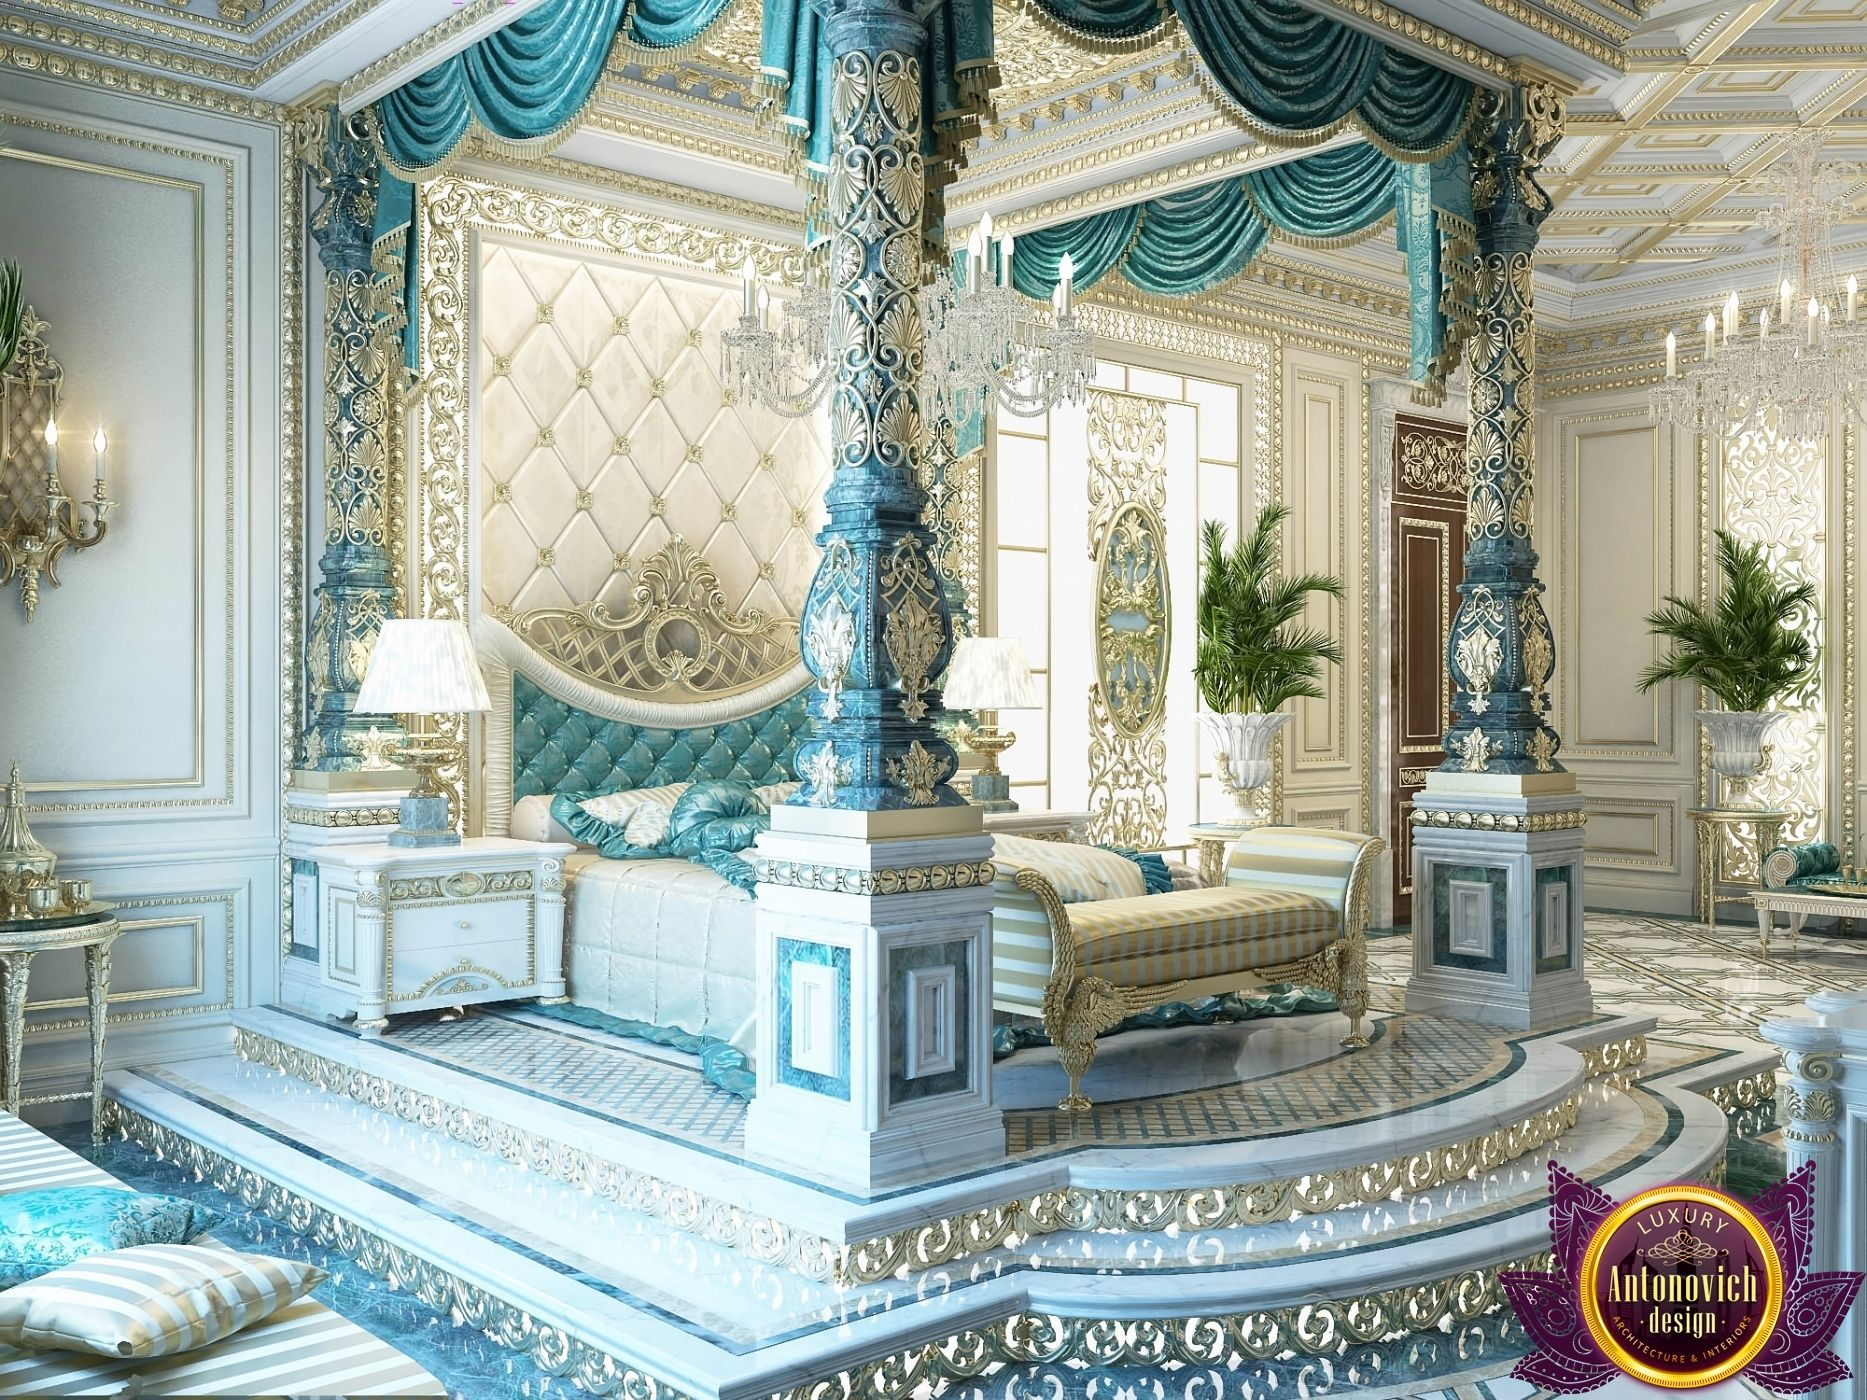 royal room interior design amazing home interior rh emreqoycuc scentsofheaven store